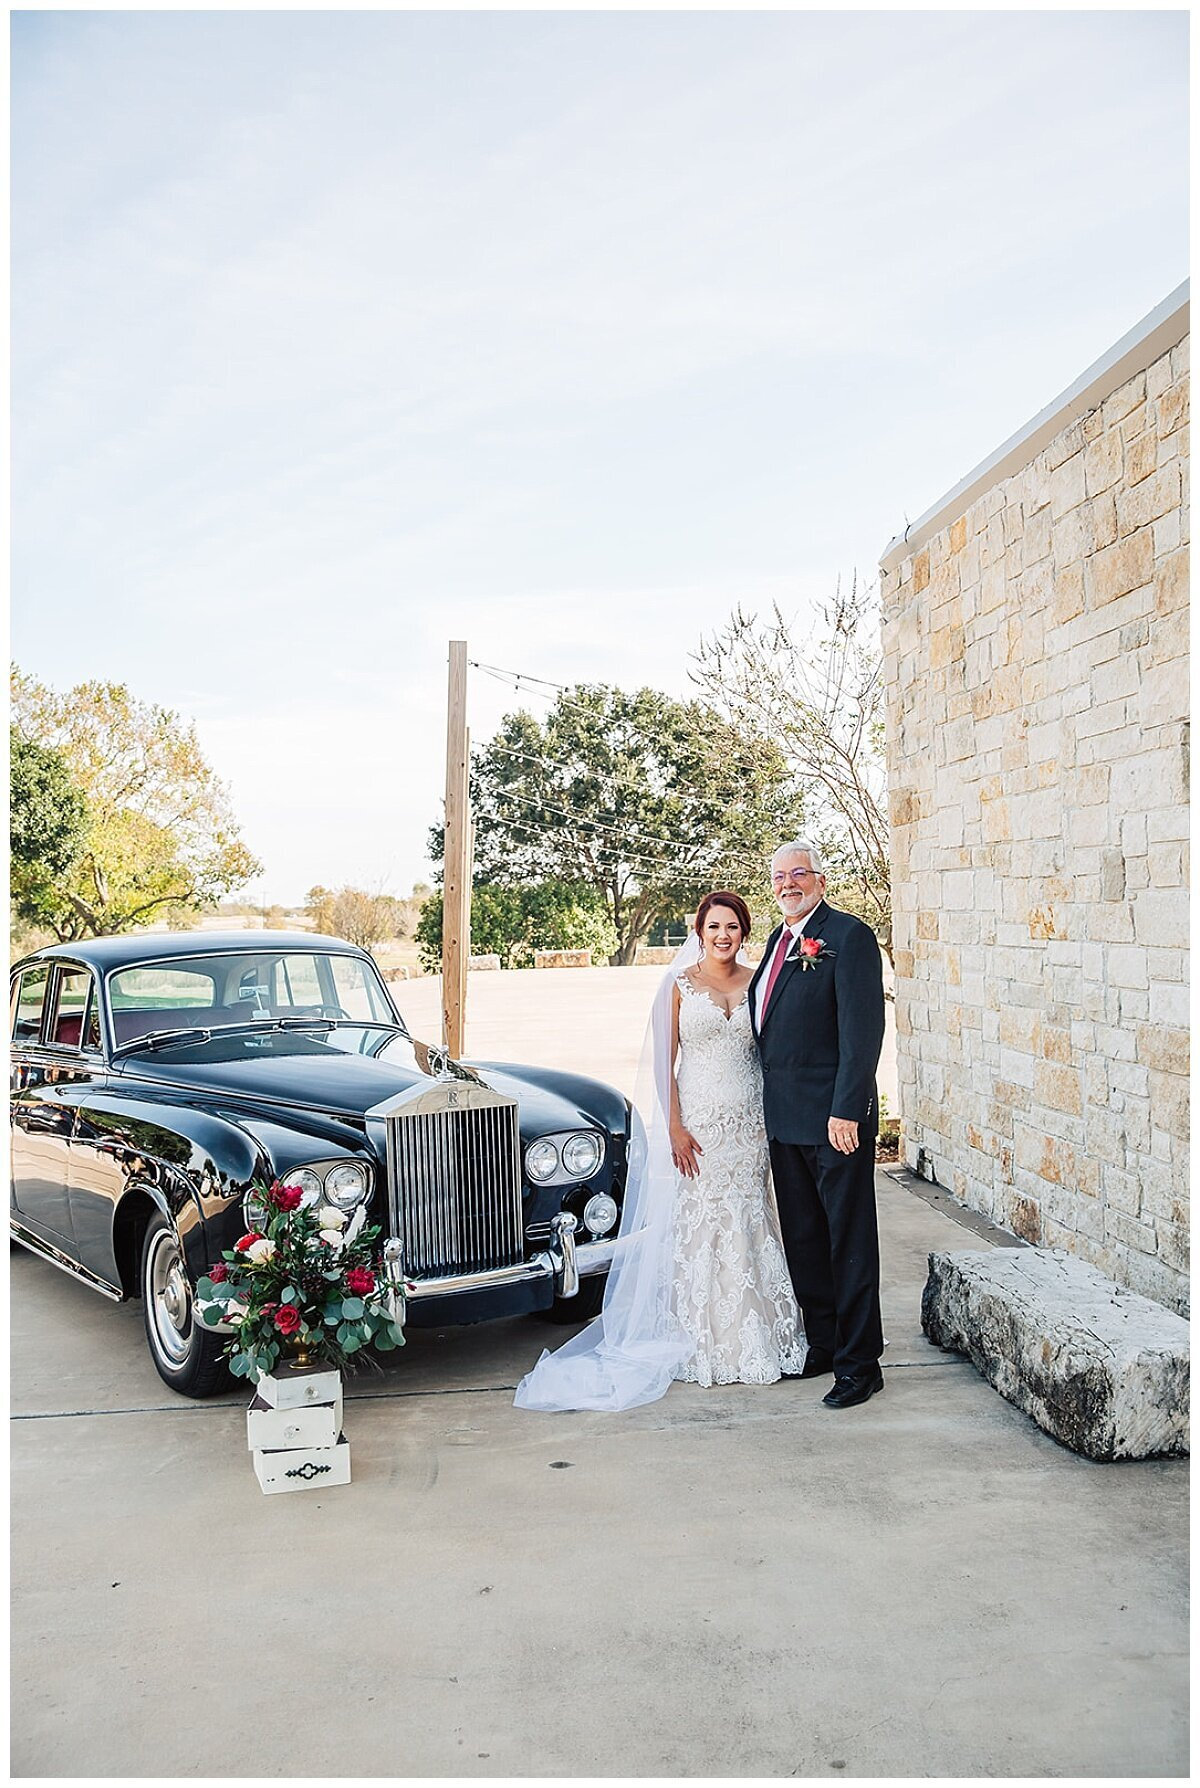 Houston Wedding Planner for Glam Boho Inspired Wedding- First Look Photos at Emery's Buffalo Creek- J Richter Events_0000